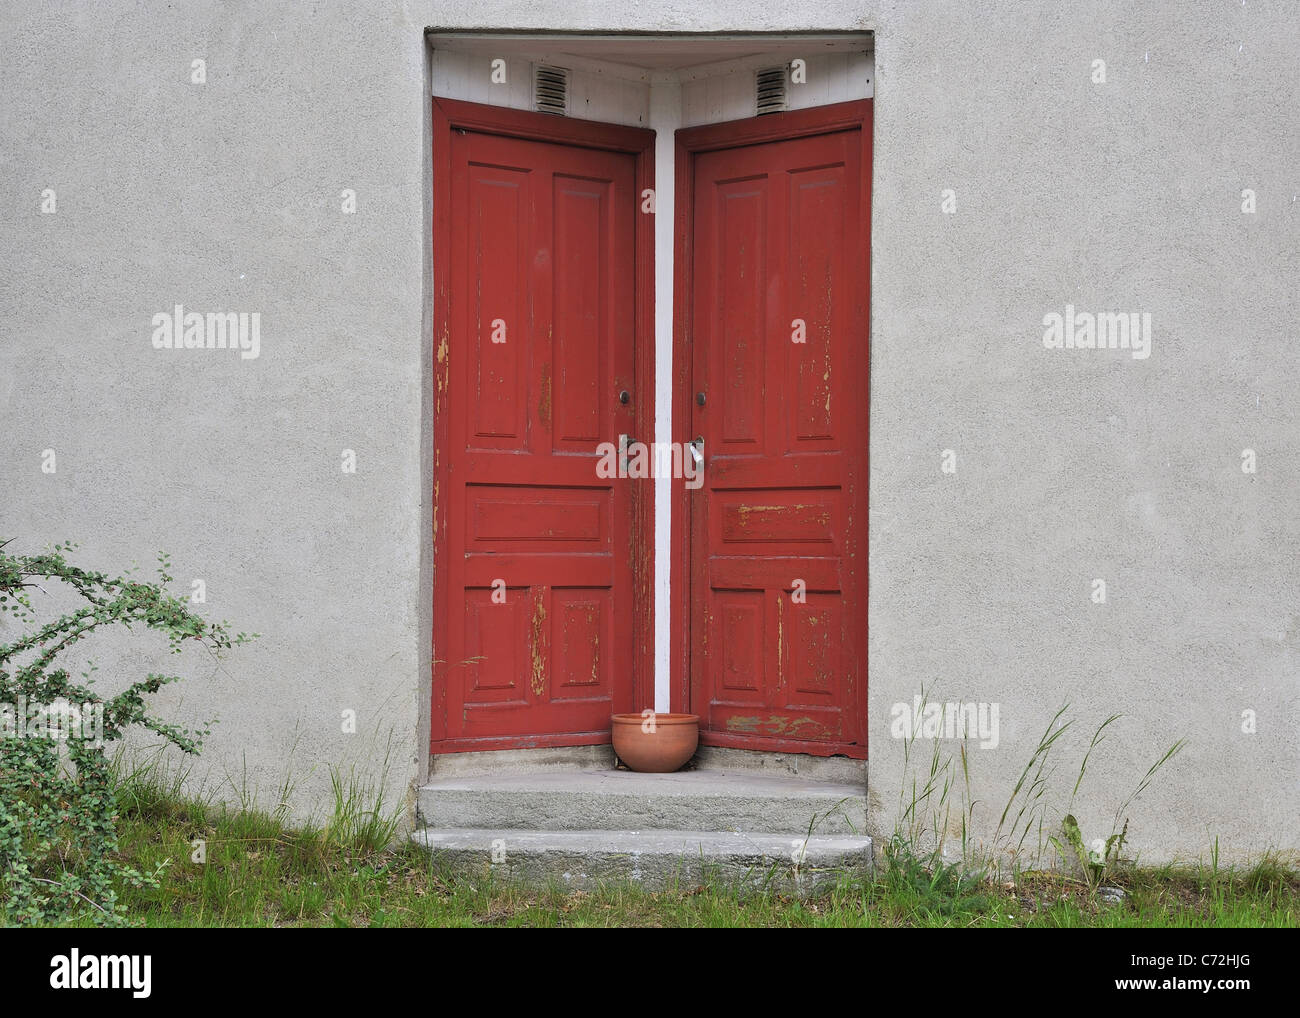 Two red doors equal - Stock Image